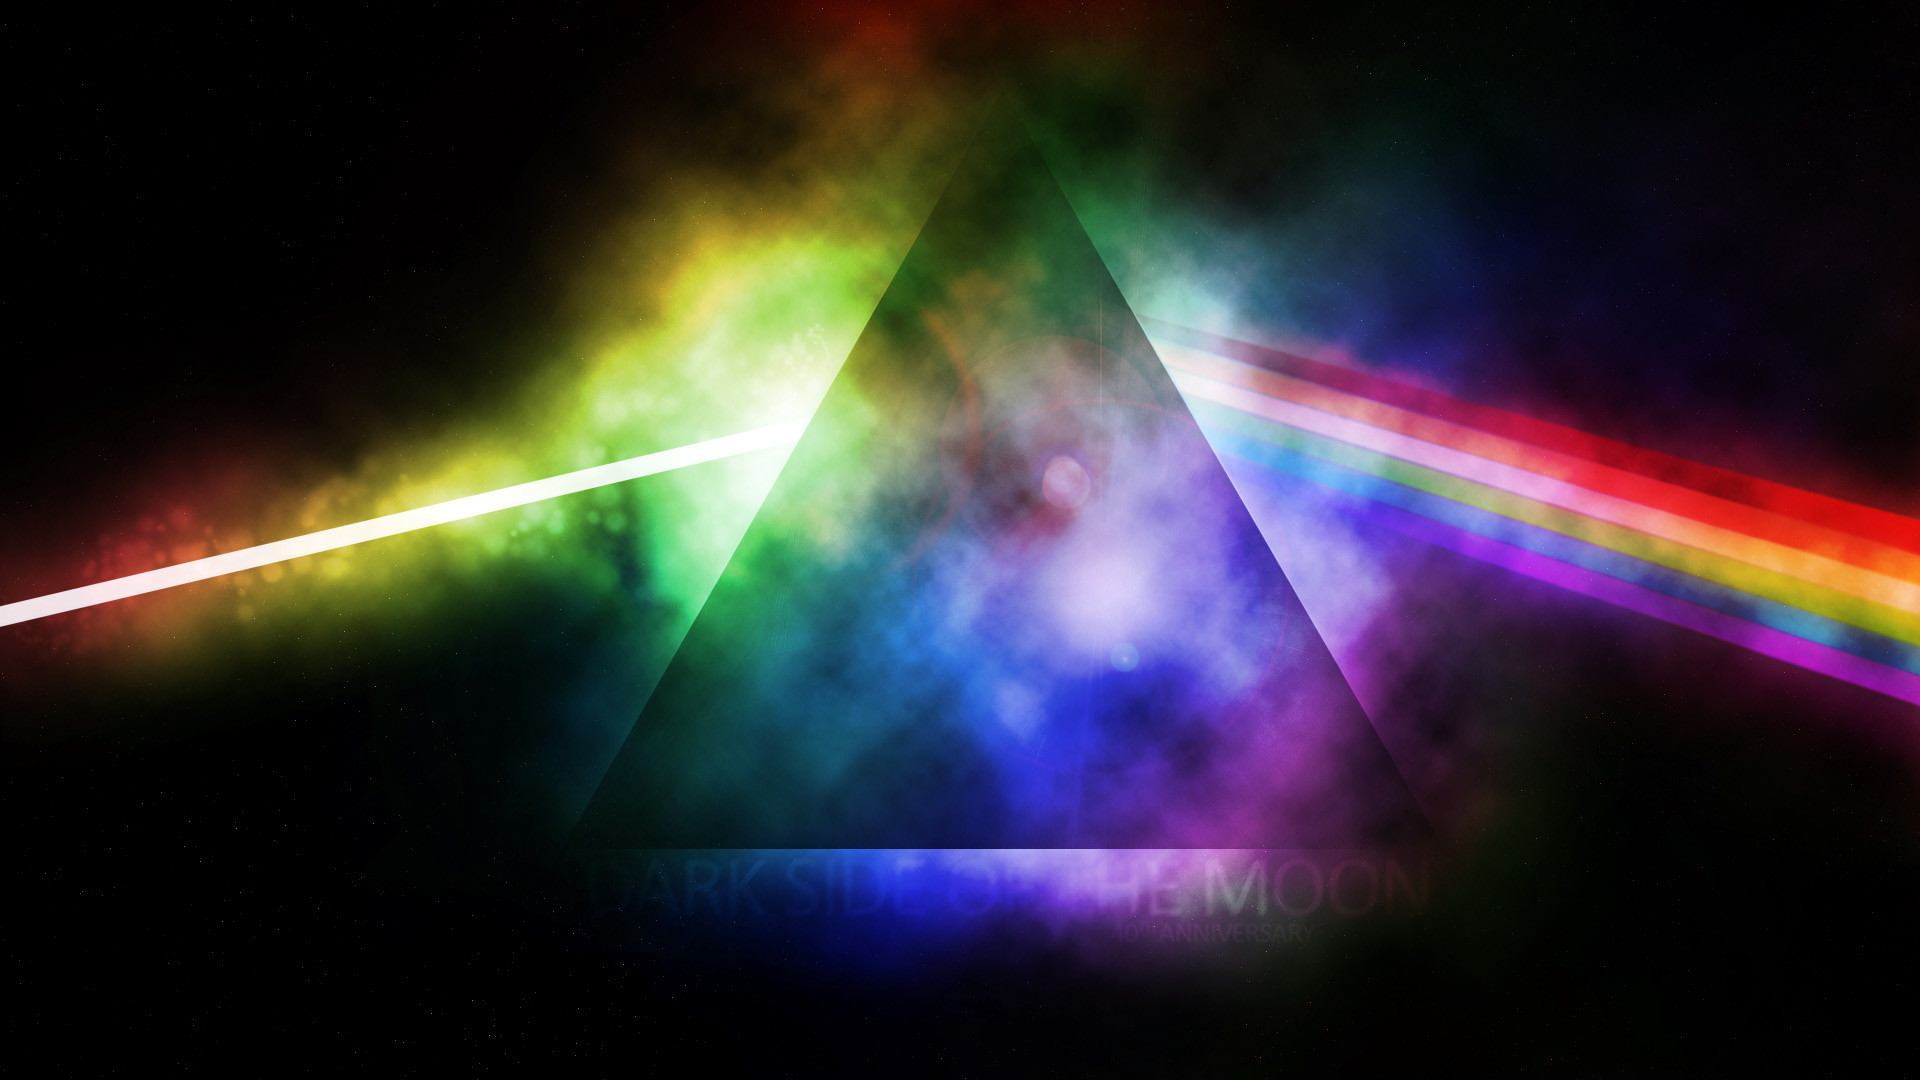 Pink floyd album covers wallpaper 68 images for Cover wallpaper